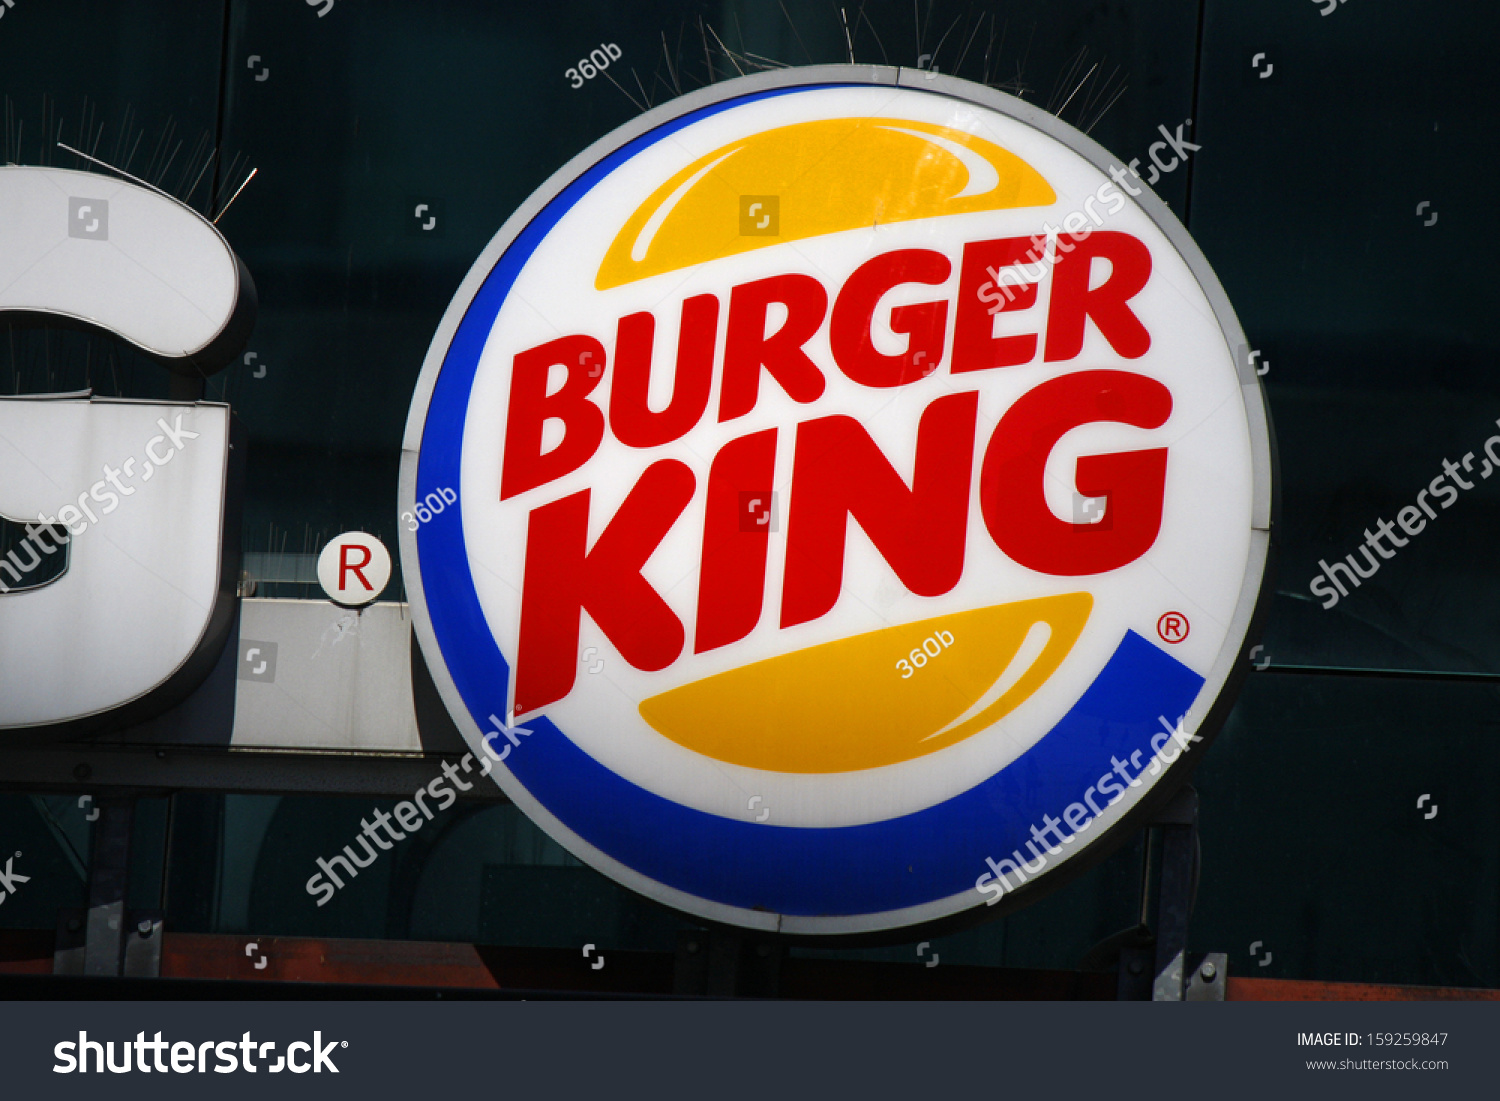 may 2012 berlin the logo of the fast food chain burger king berlin stock photo 159259847. Black Bedroom Furniture Sets. Home Design Ideas